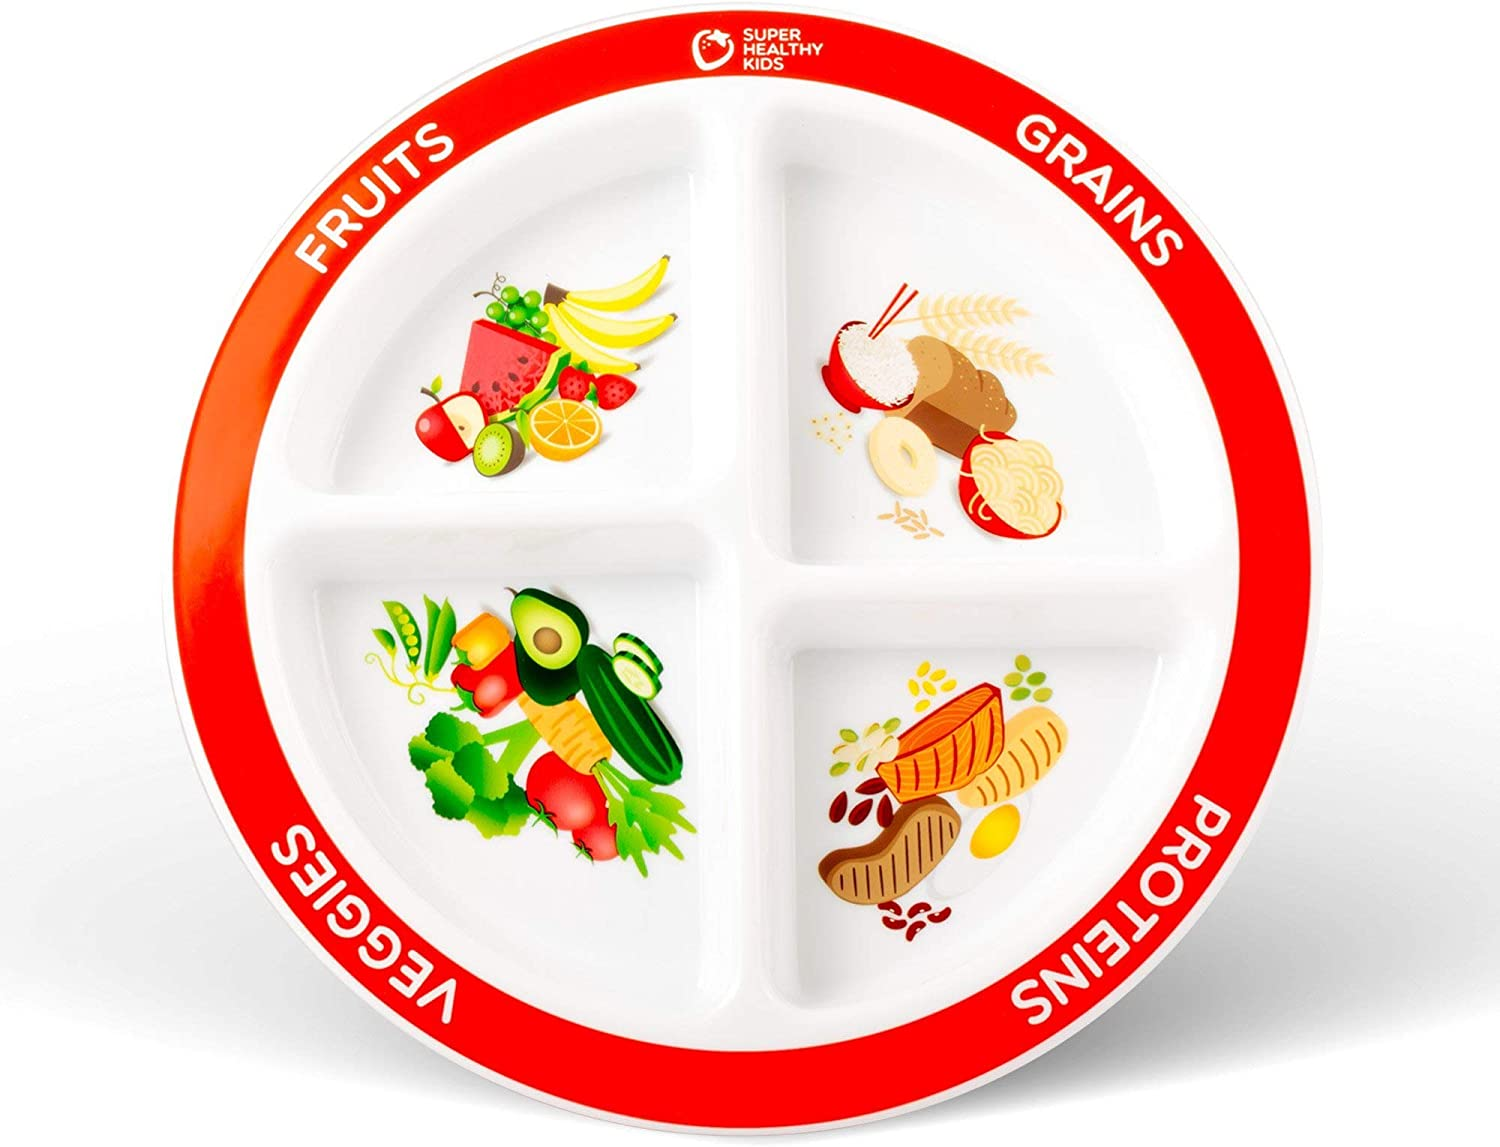 Health Beet Portion Plate Choose MyPlate for Kids, Toddlers - Kids Plates with Dividers and Nutrition Portions - English Language (Single Plate)